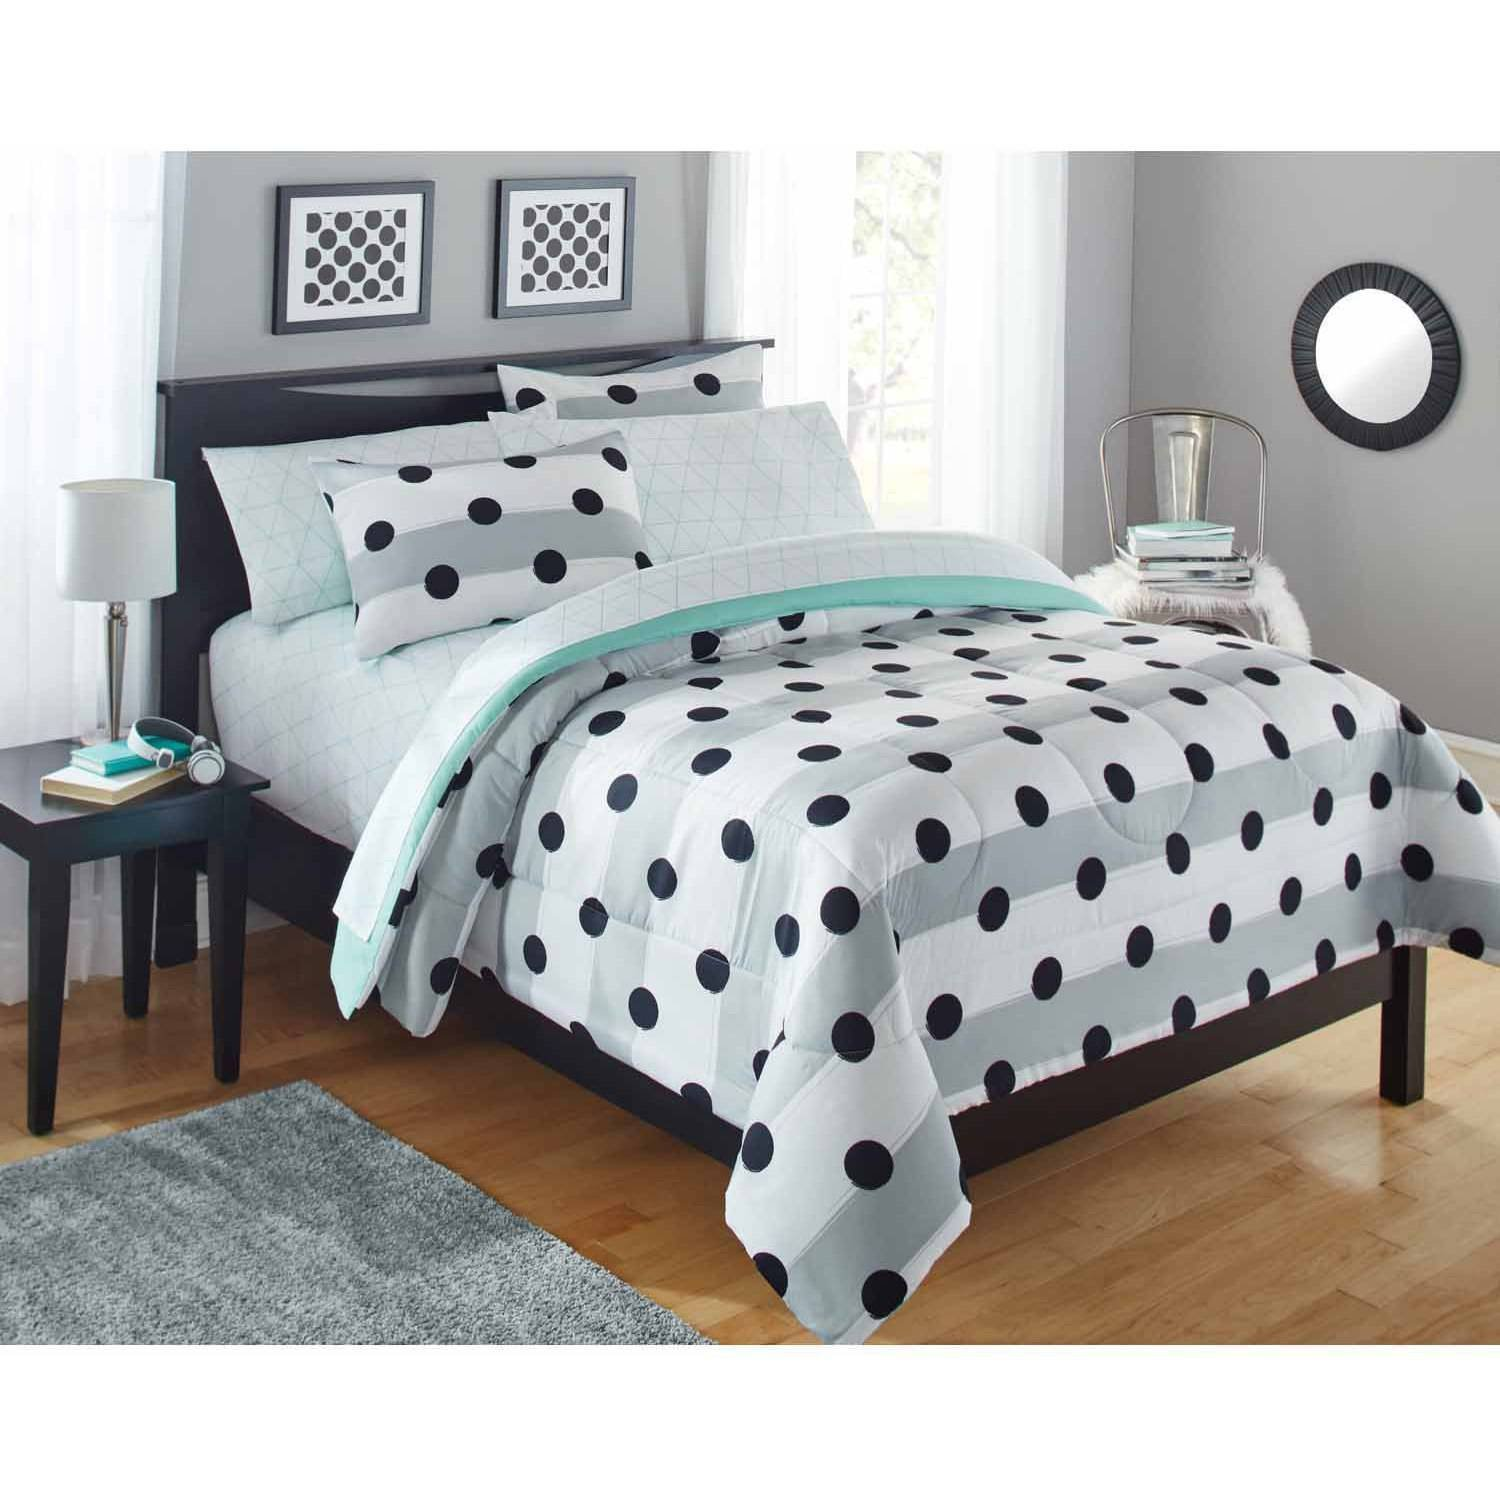 Classic White with Black Polka Dot Pattern Bed in a Bag Fresh and Stylish Bedding Comforter Set